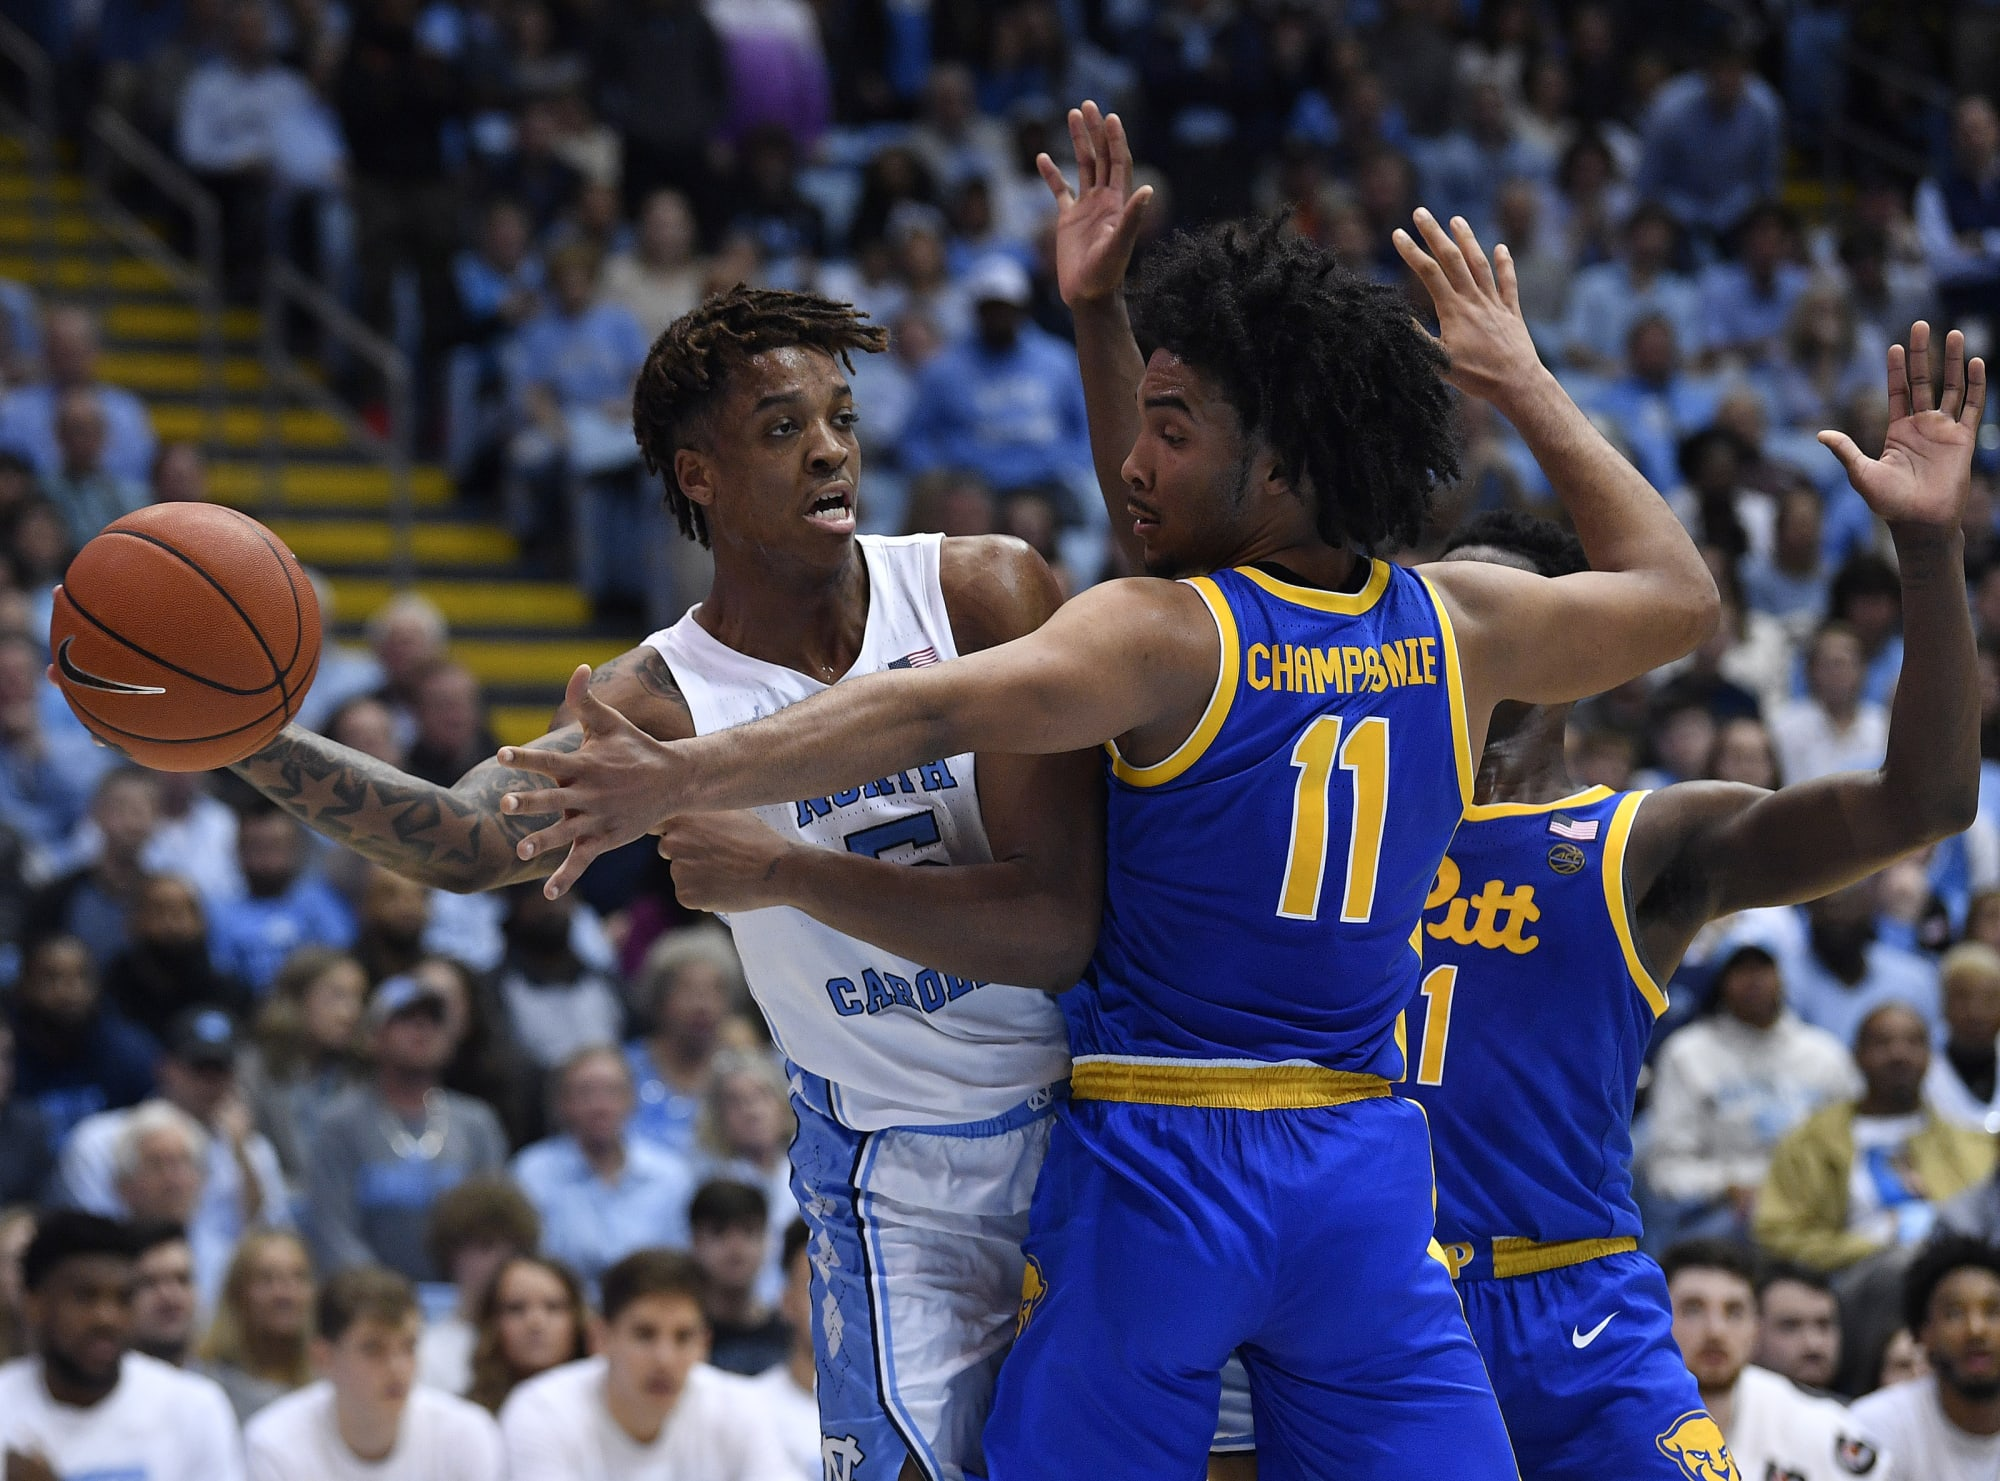 UNC Basketball vs. Pitt: Game preview, info, prediction and more